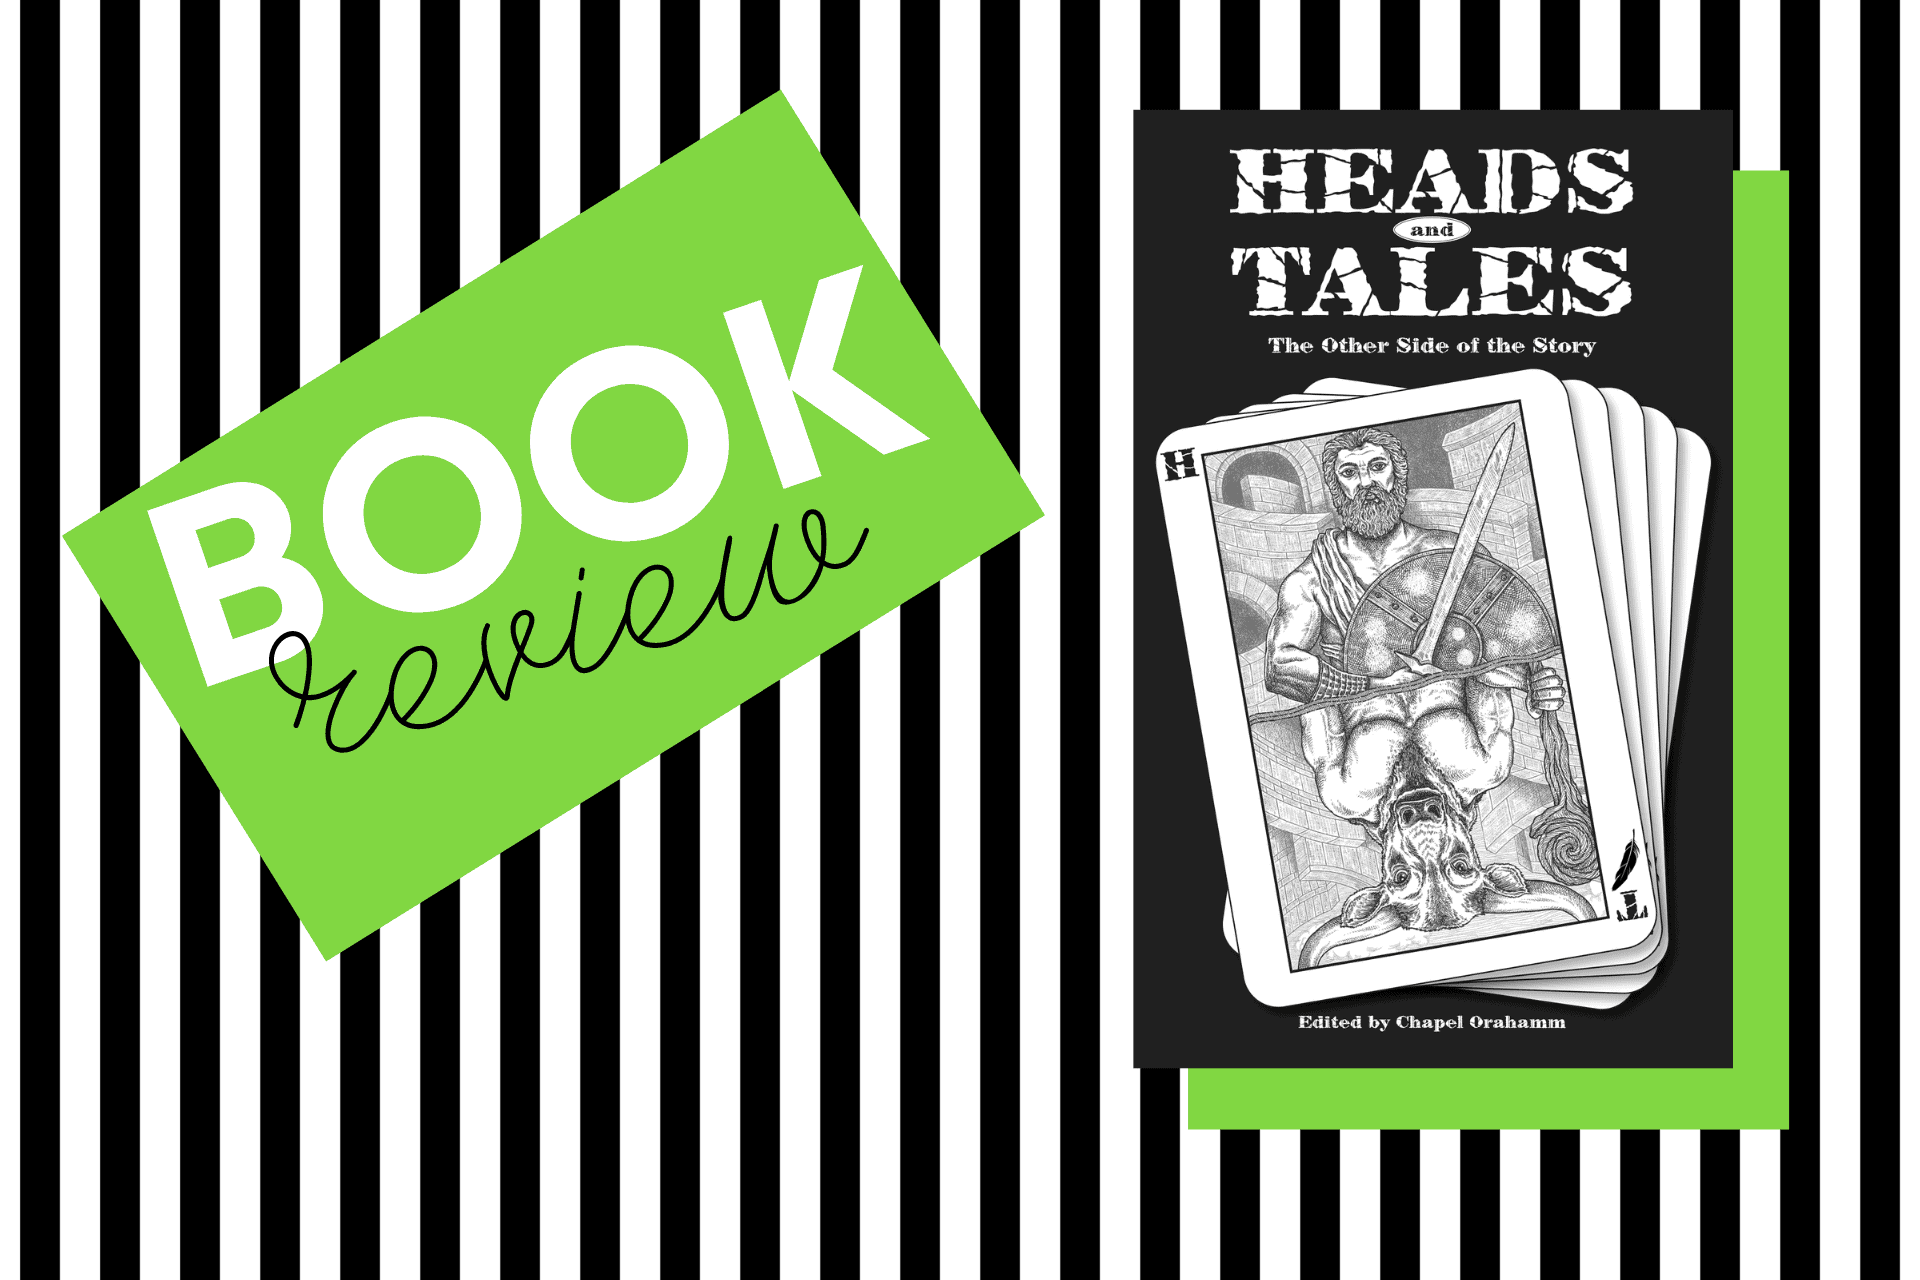 The cover of Heads and Tales, an anthology